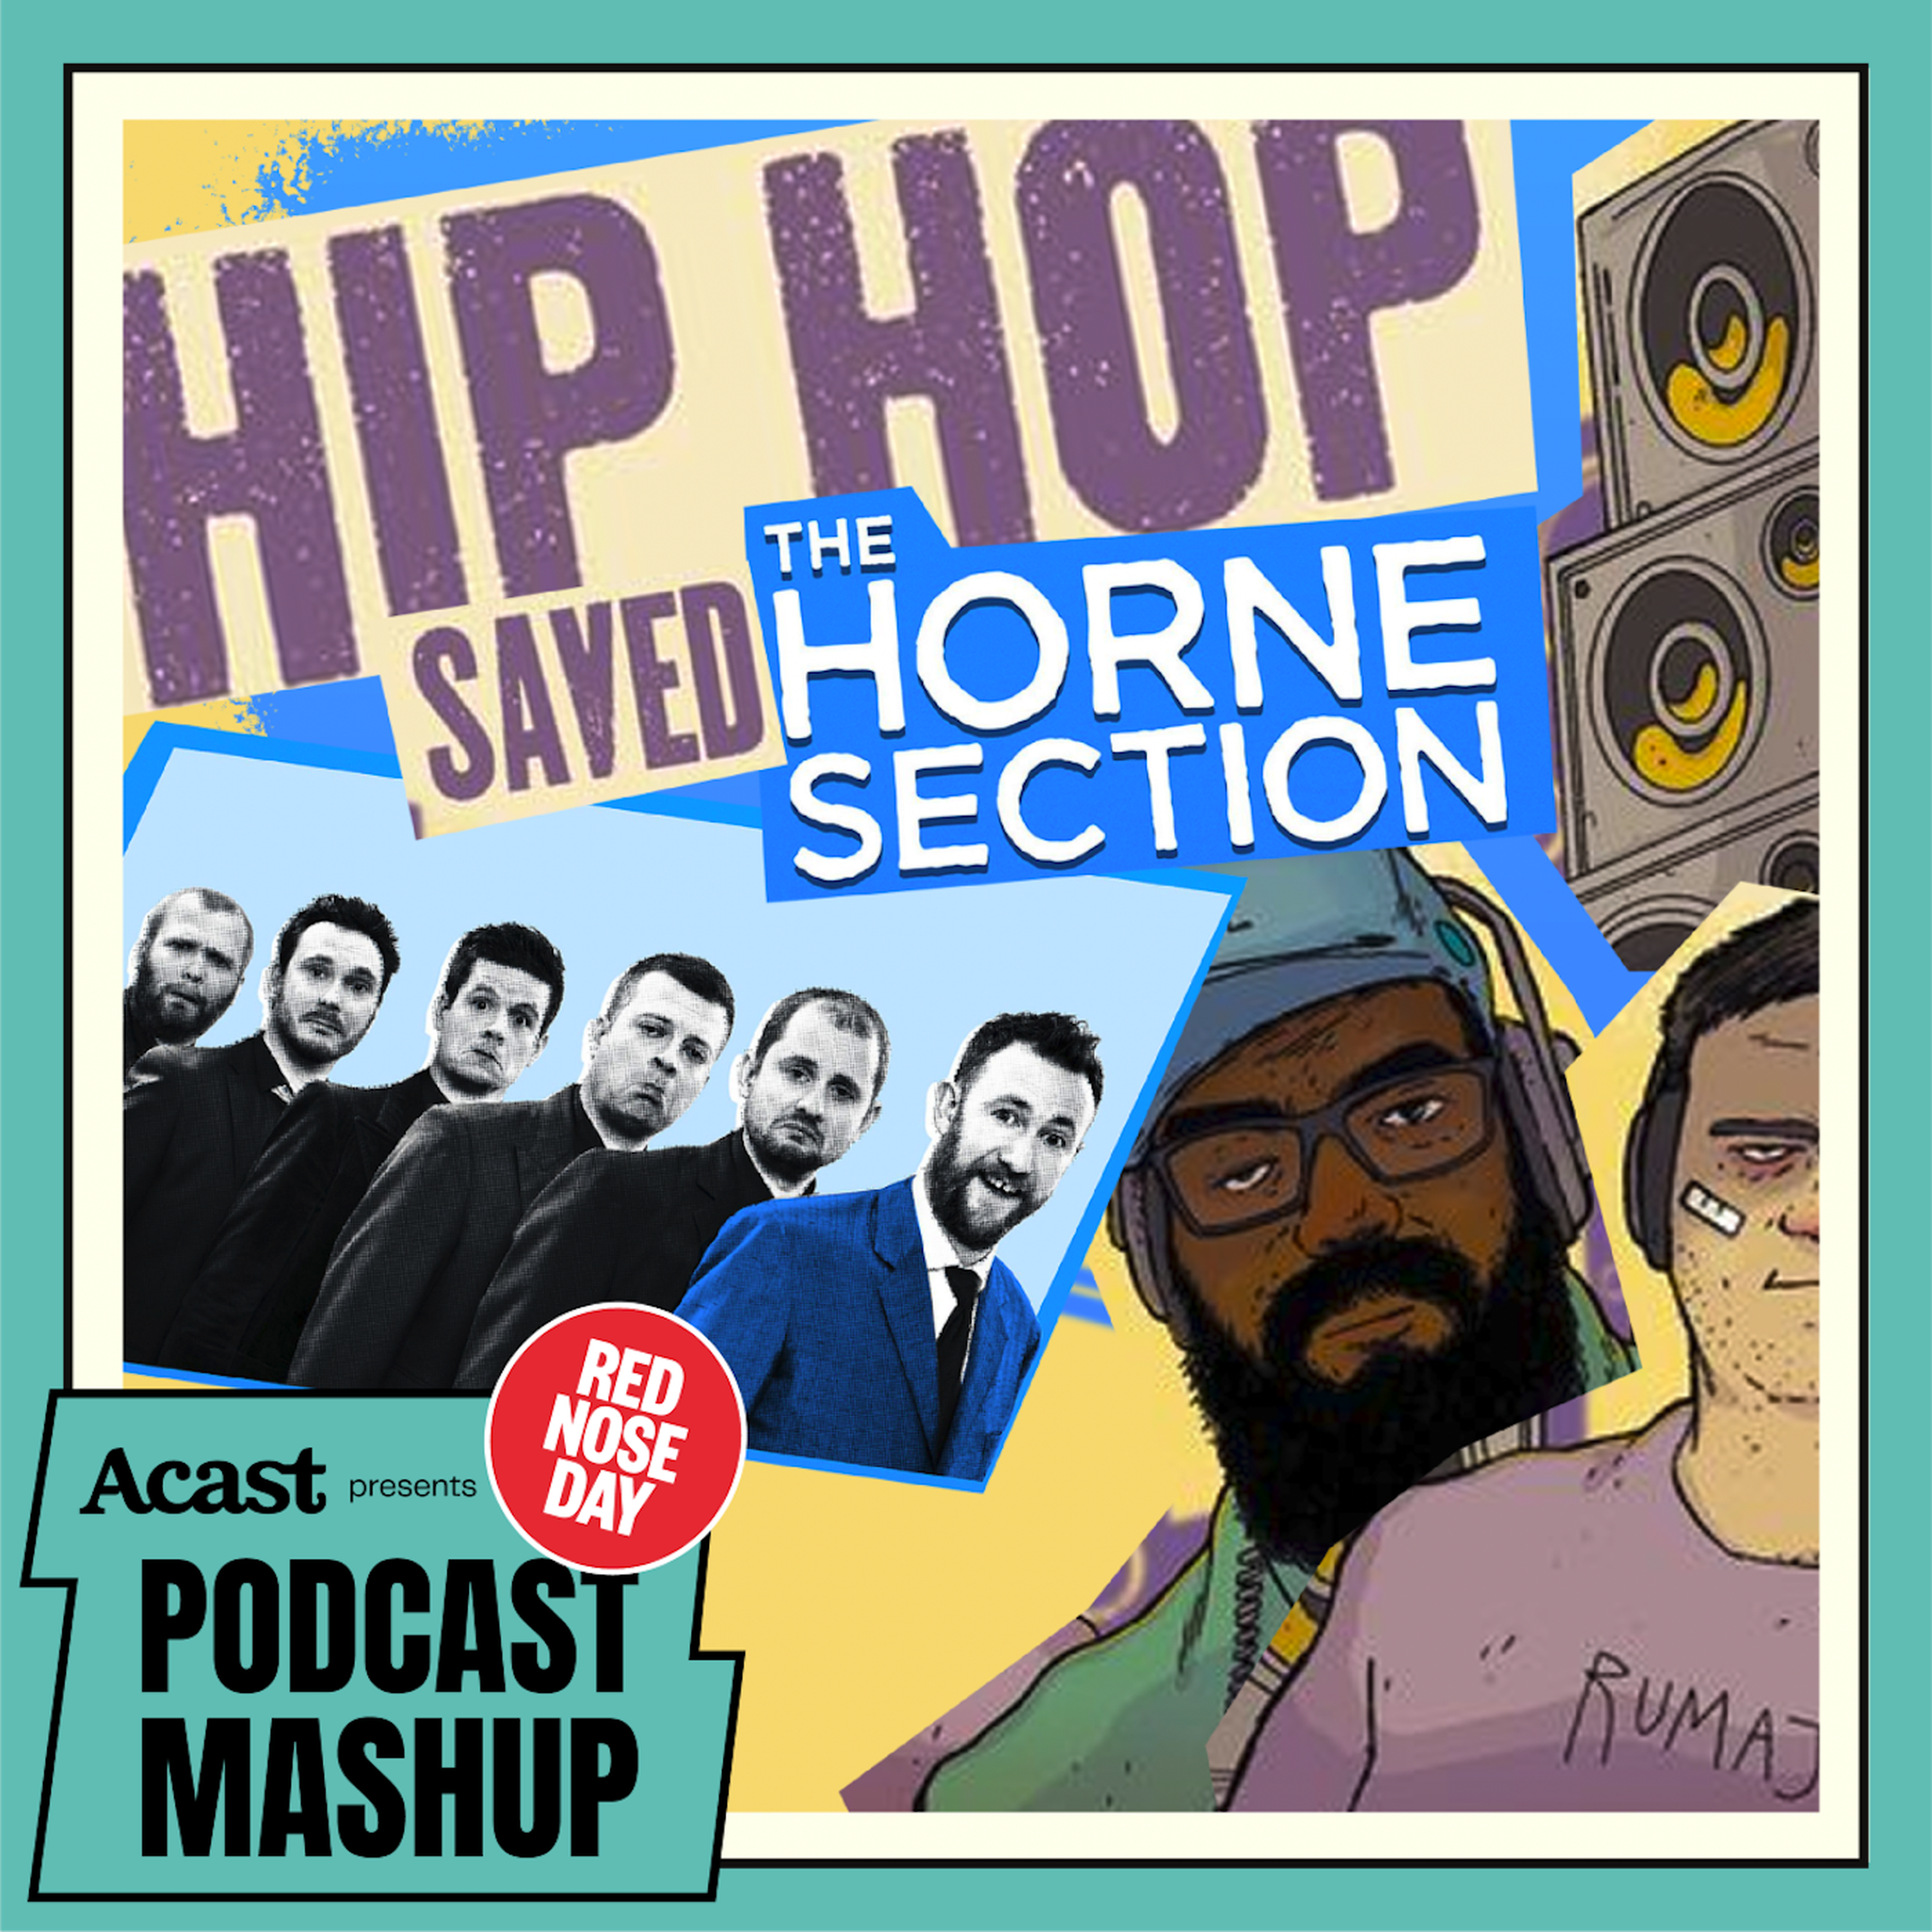 S3 Ep 12 - Hip Hop Saved The Horne Section